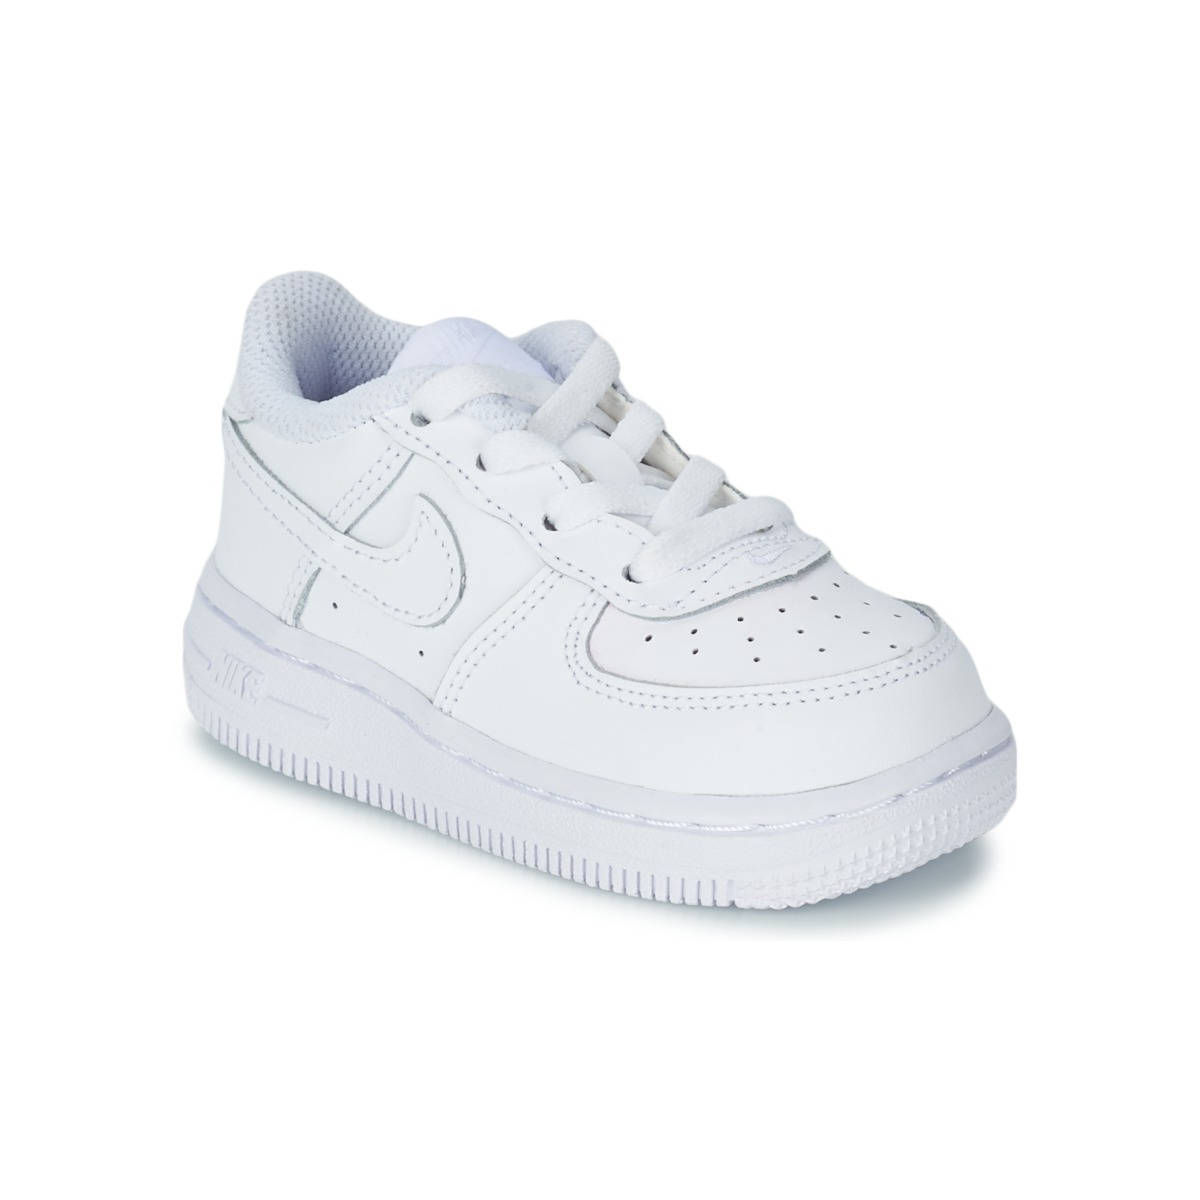 Nike Air Force Toddler White Delivery